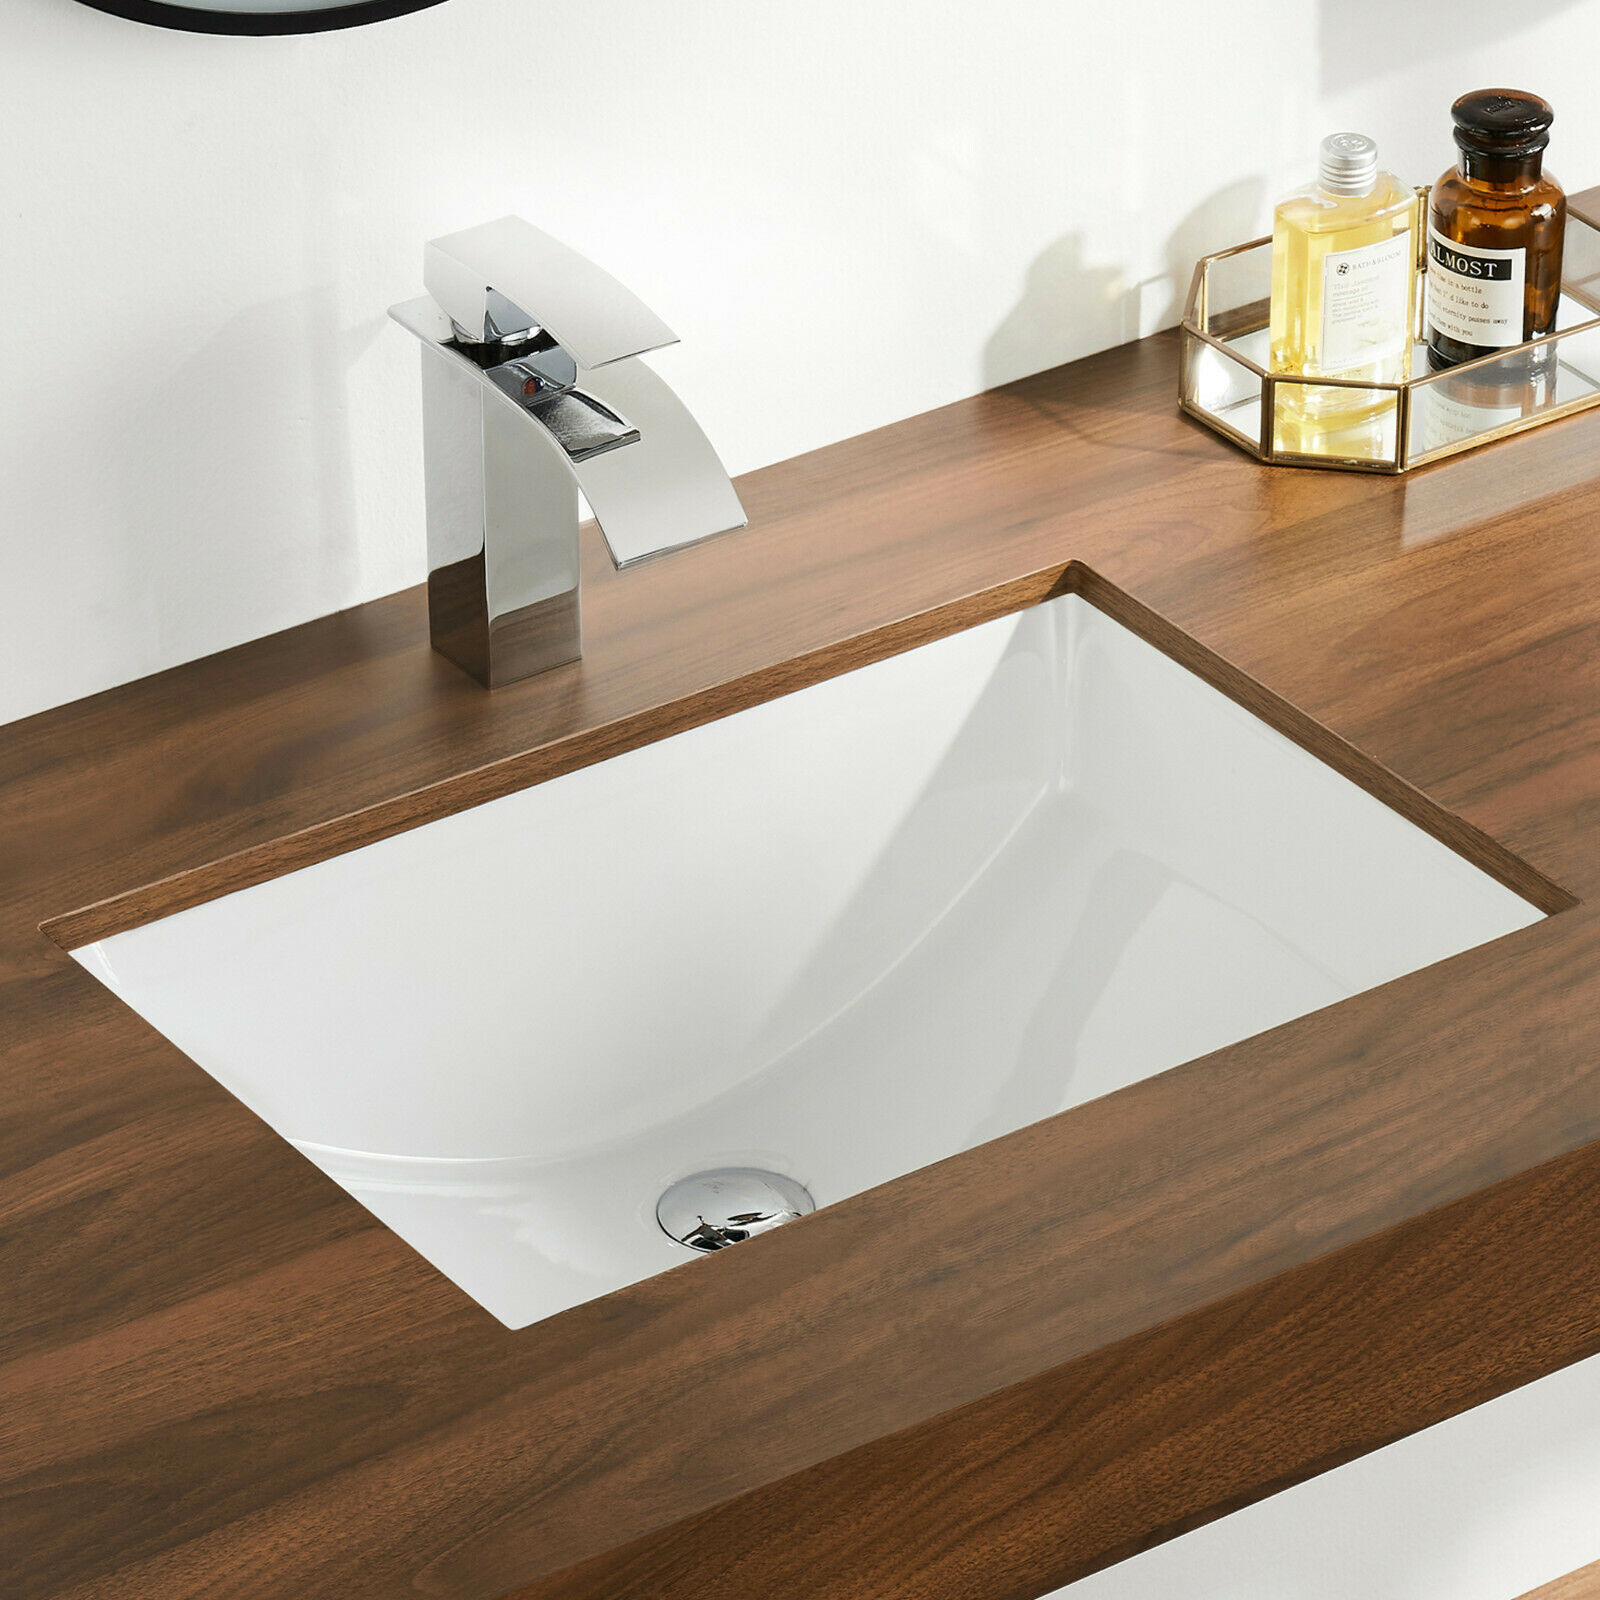 Cupc Ceramic Circular Undermount Bathroom Sink With Faucet And Overflow For Sale Online Ebay